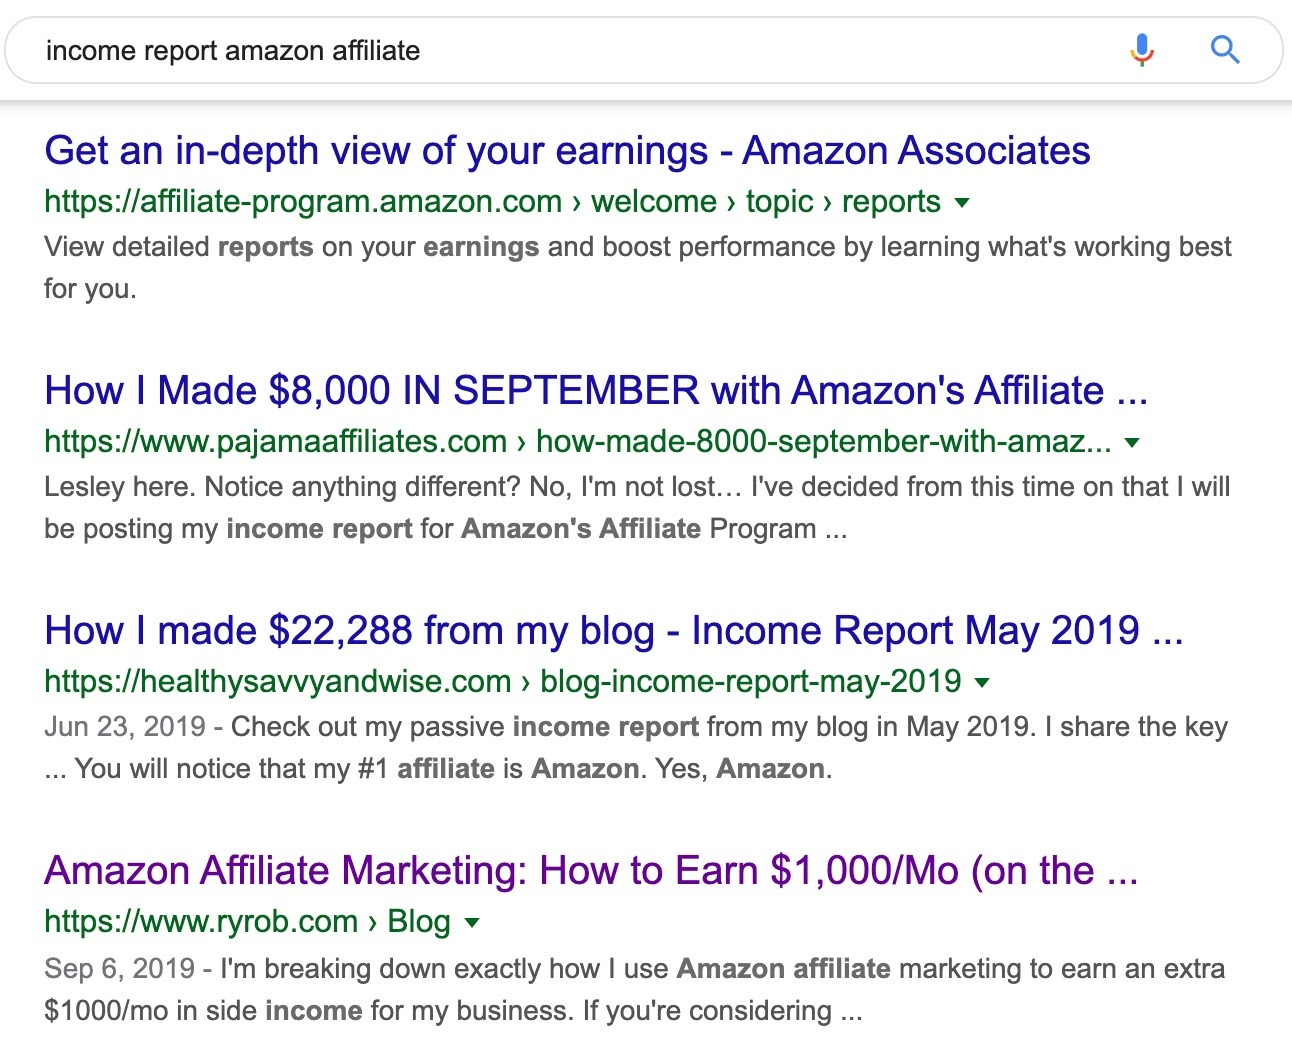 income report amazon affiliate Google Search 2